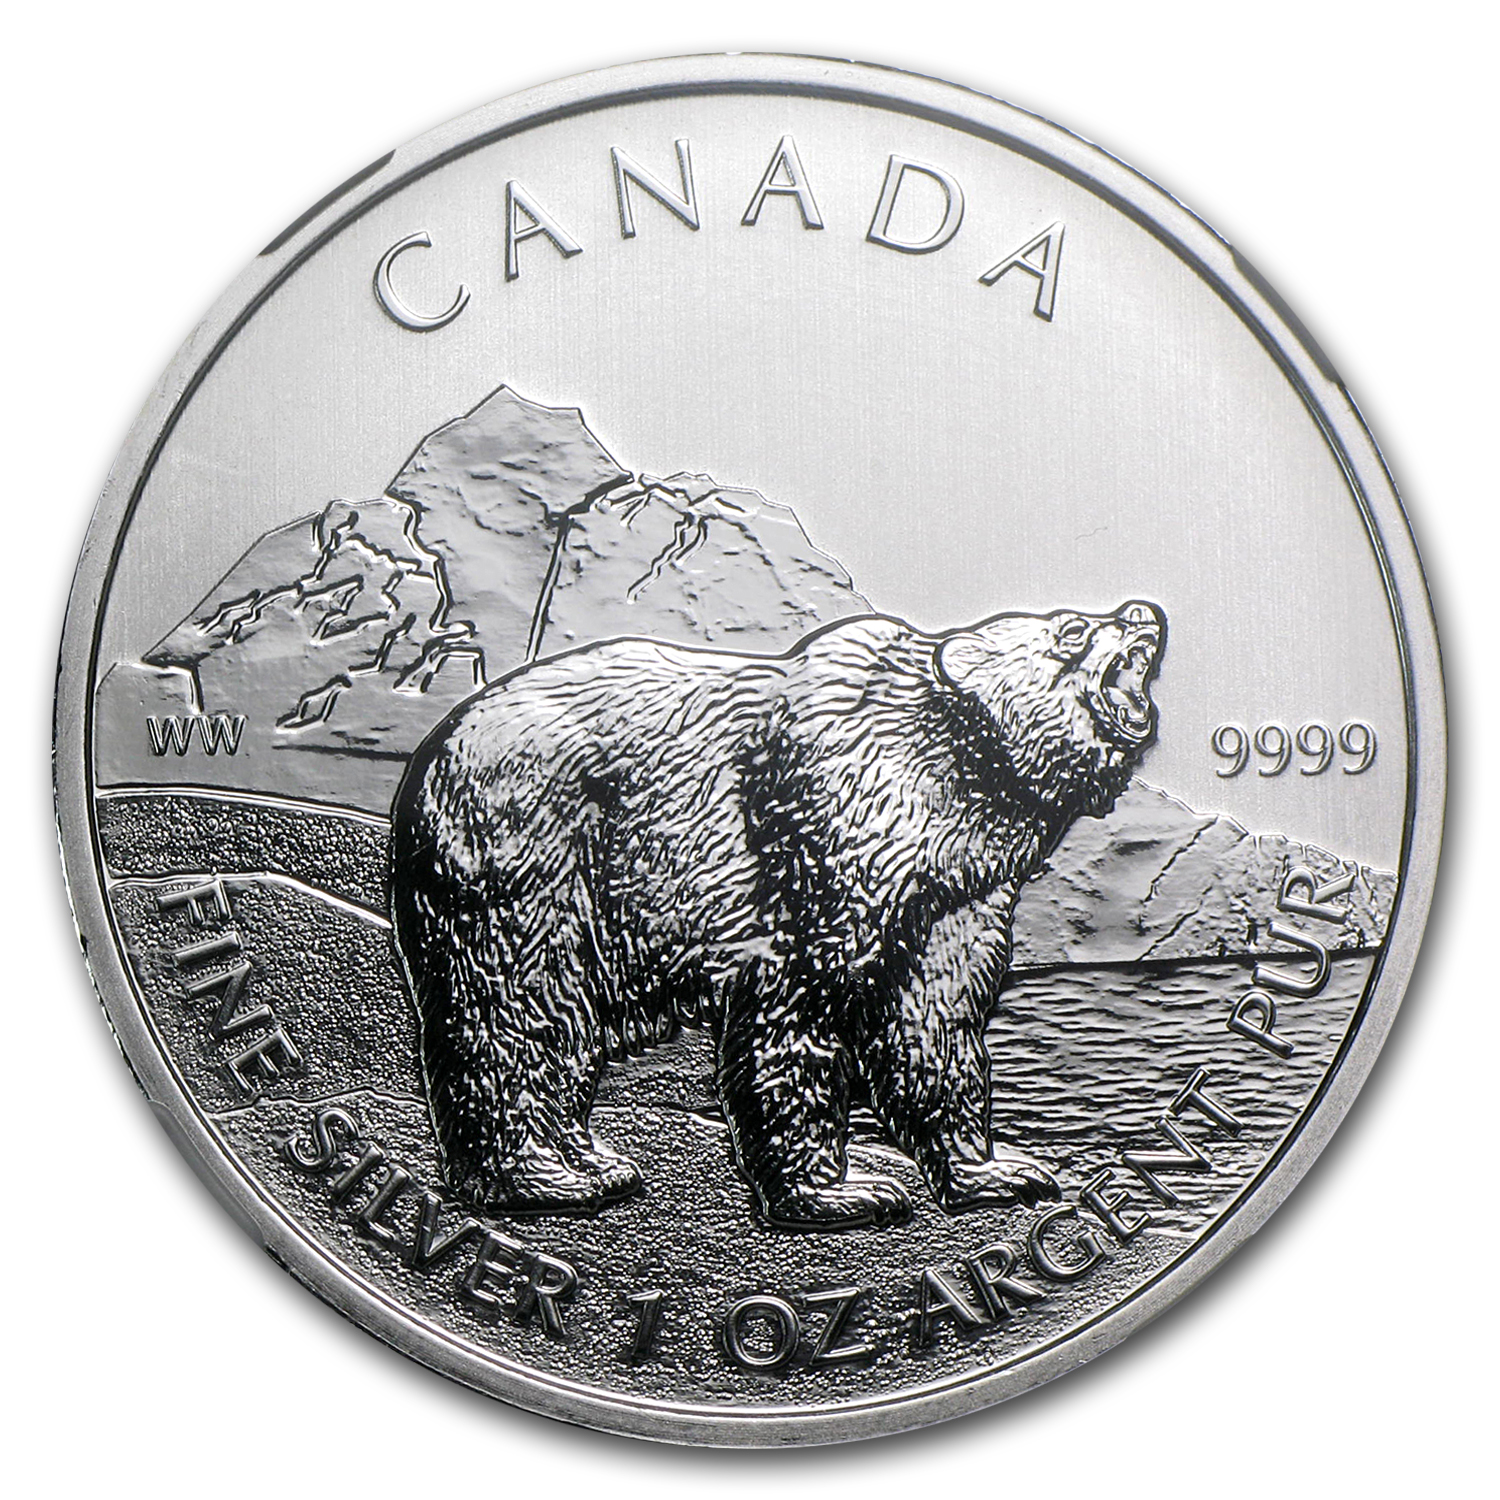 2011 1 oz Silver Canadian Wildlife Series Grizzly MS-68 NGC